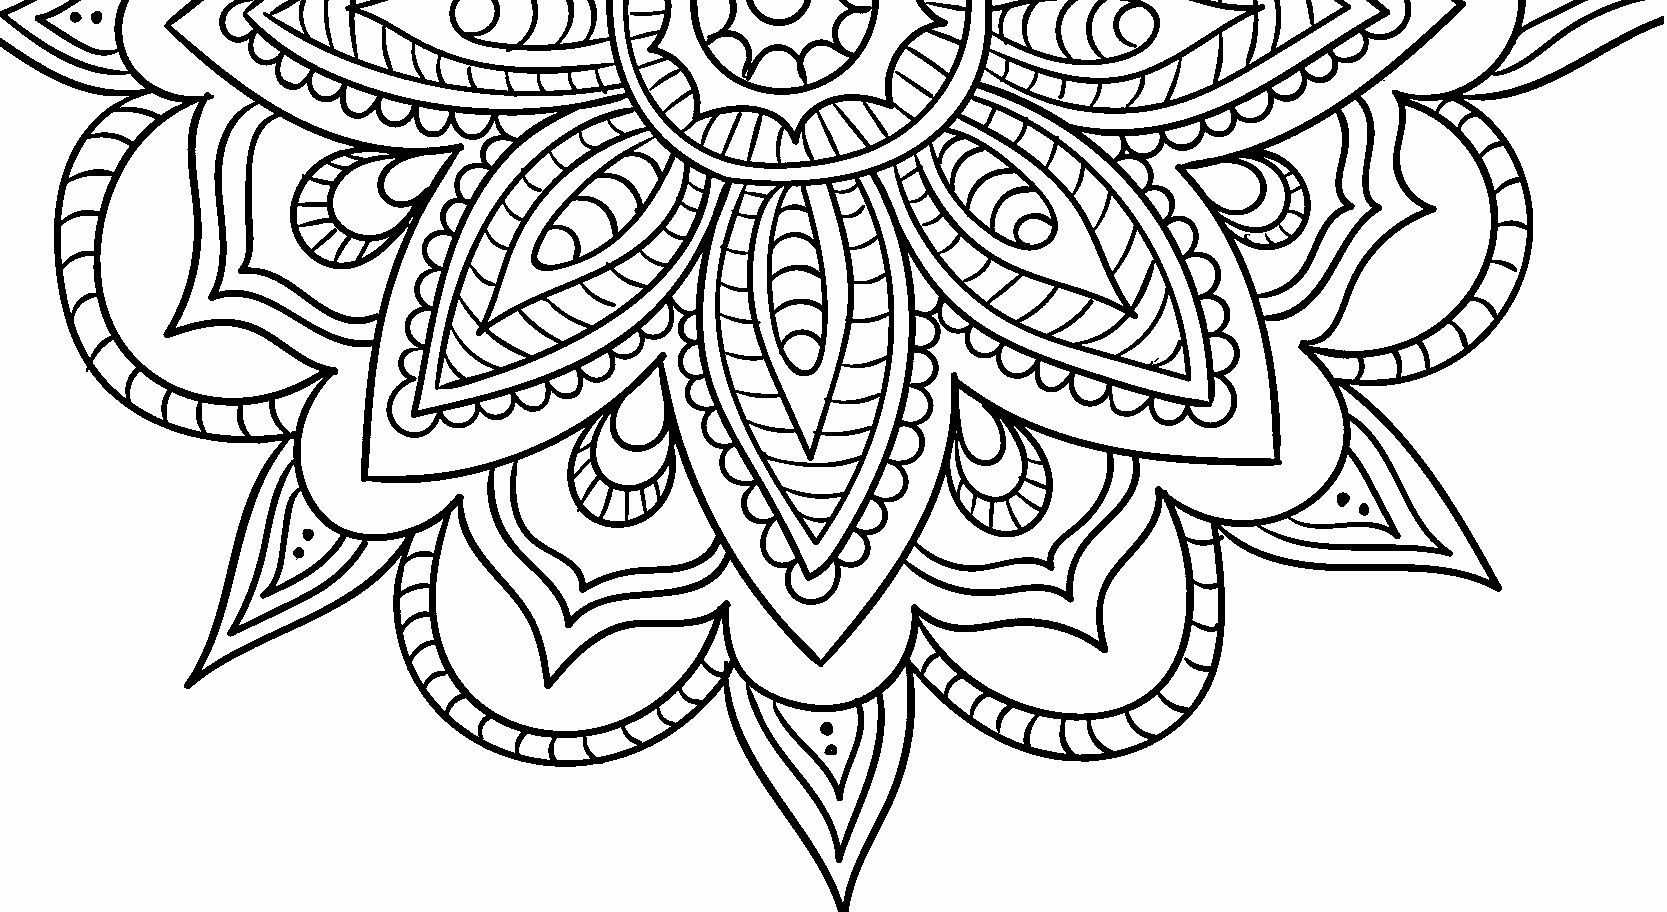 Easy Adult Coloring Books Best Of Adult Coloring Pages Patterns Coloring Home In 2020 Geometric Coloring Pages Mandala Coloring Pages Abstract Coloring Pages